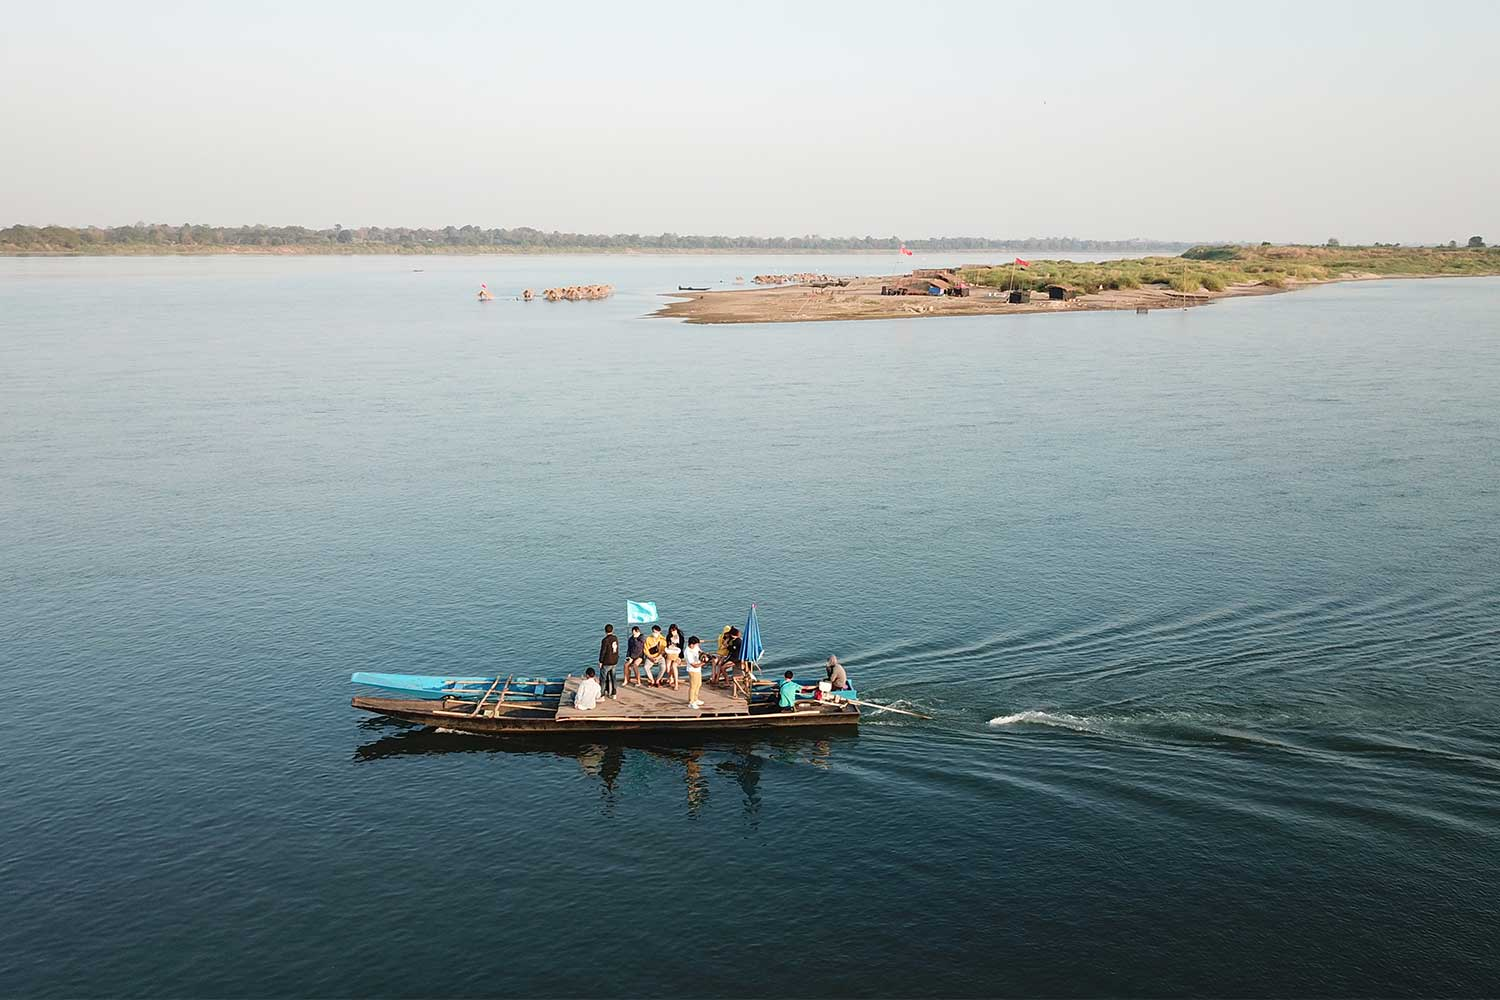 A boat leaves the Mekong River bank, taking visitors to sand beach, Had Hae (top right), in the Mekong River, in tambon Nam Kam of That Phanom district, Nakhon Phanom province. The popular island reopened to visitors last week, with strict Covid-19 controls. (Photo: Pattanapong Sripiachai)